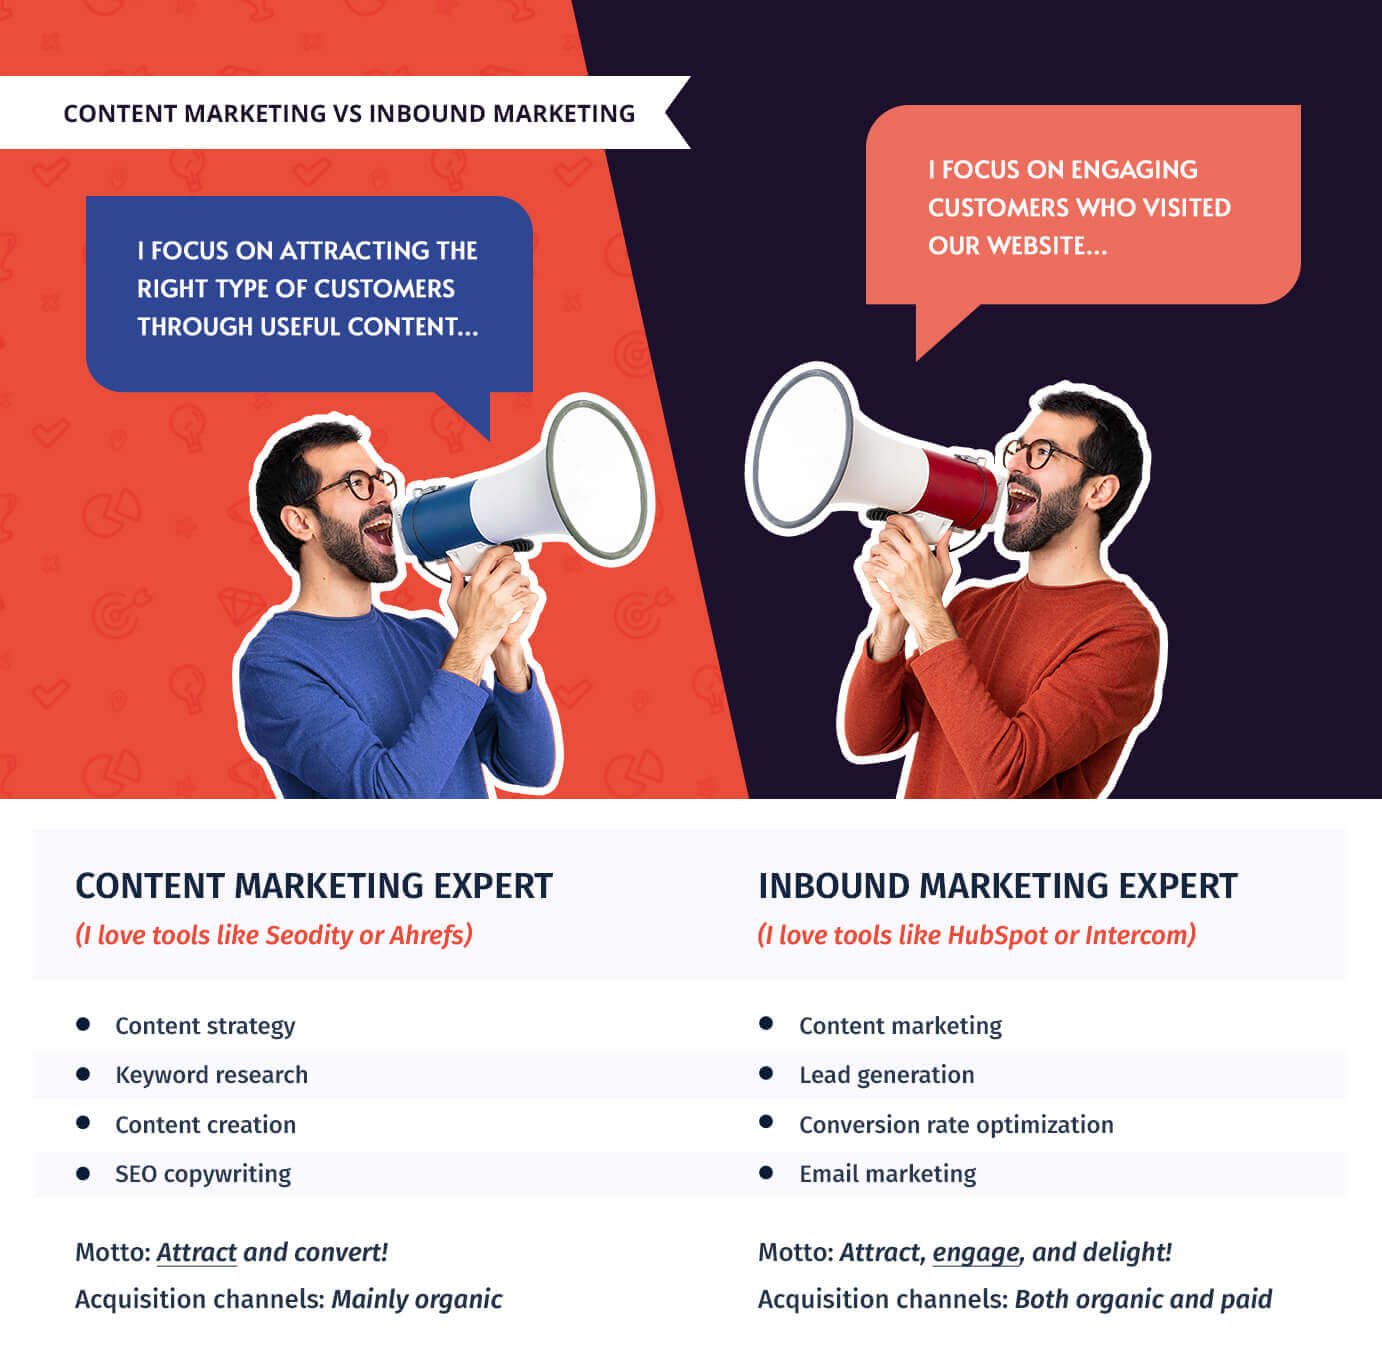 Infographic explaining the differences between content marketing and inbound marketing